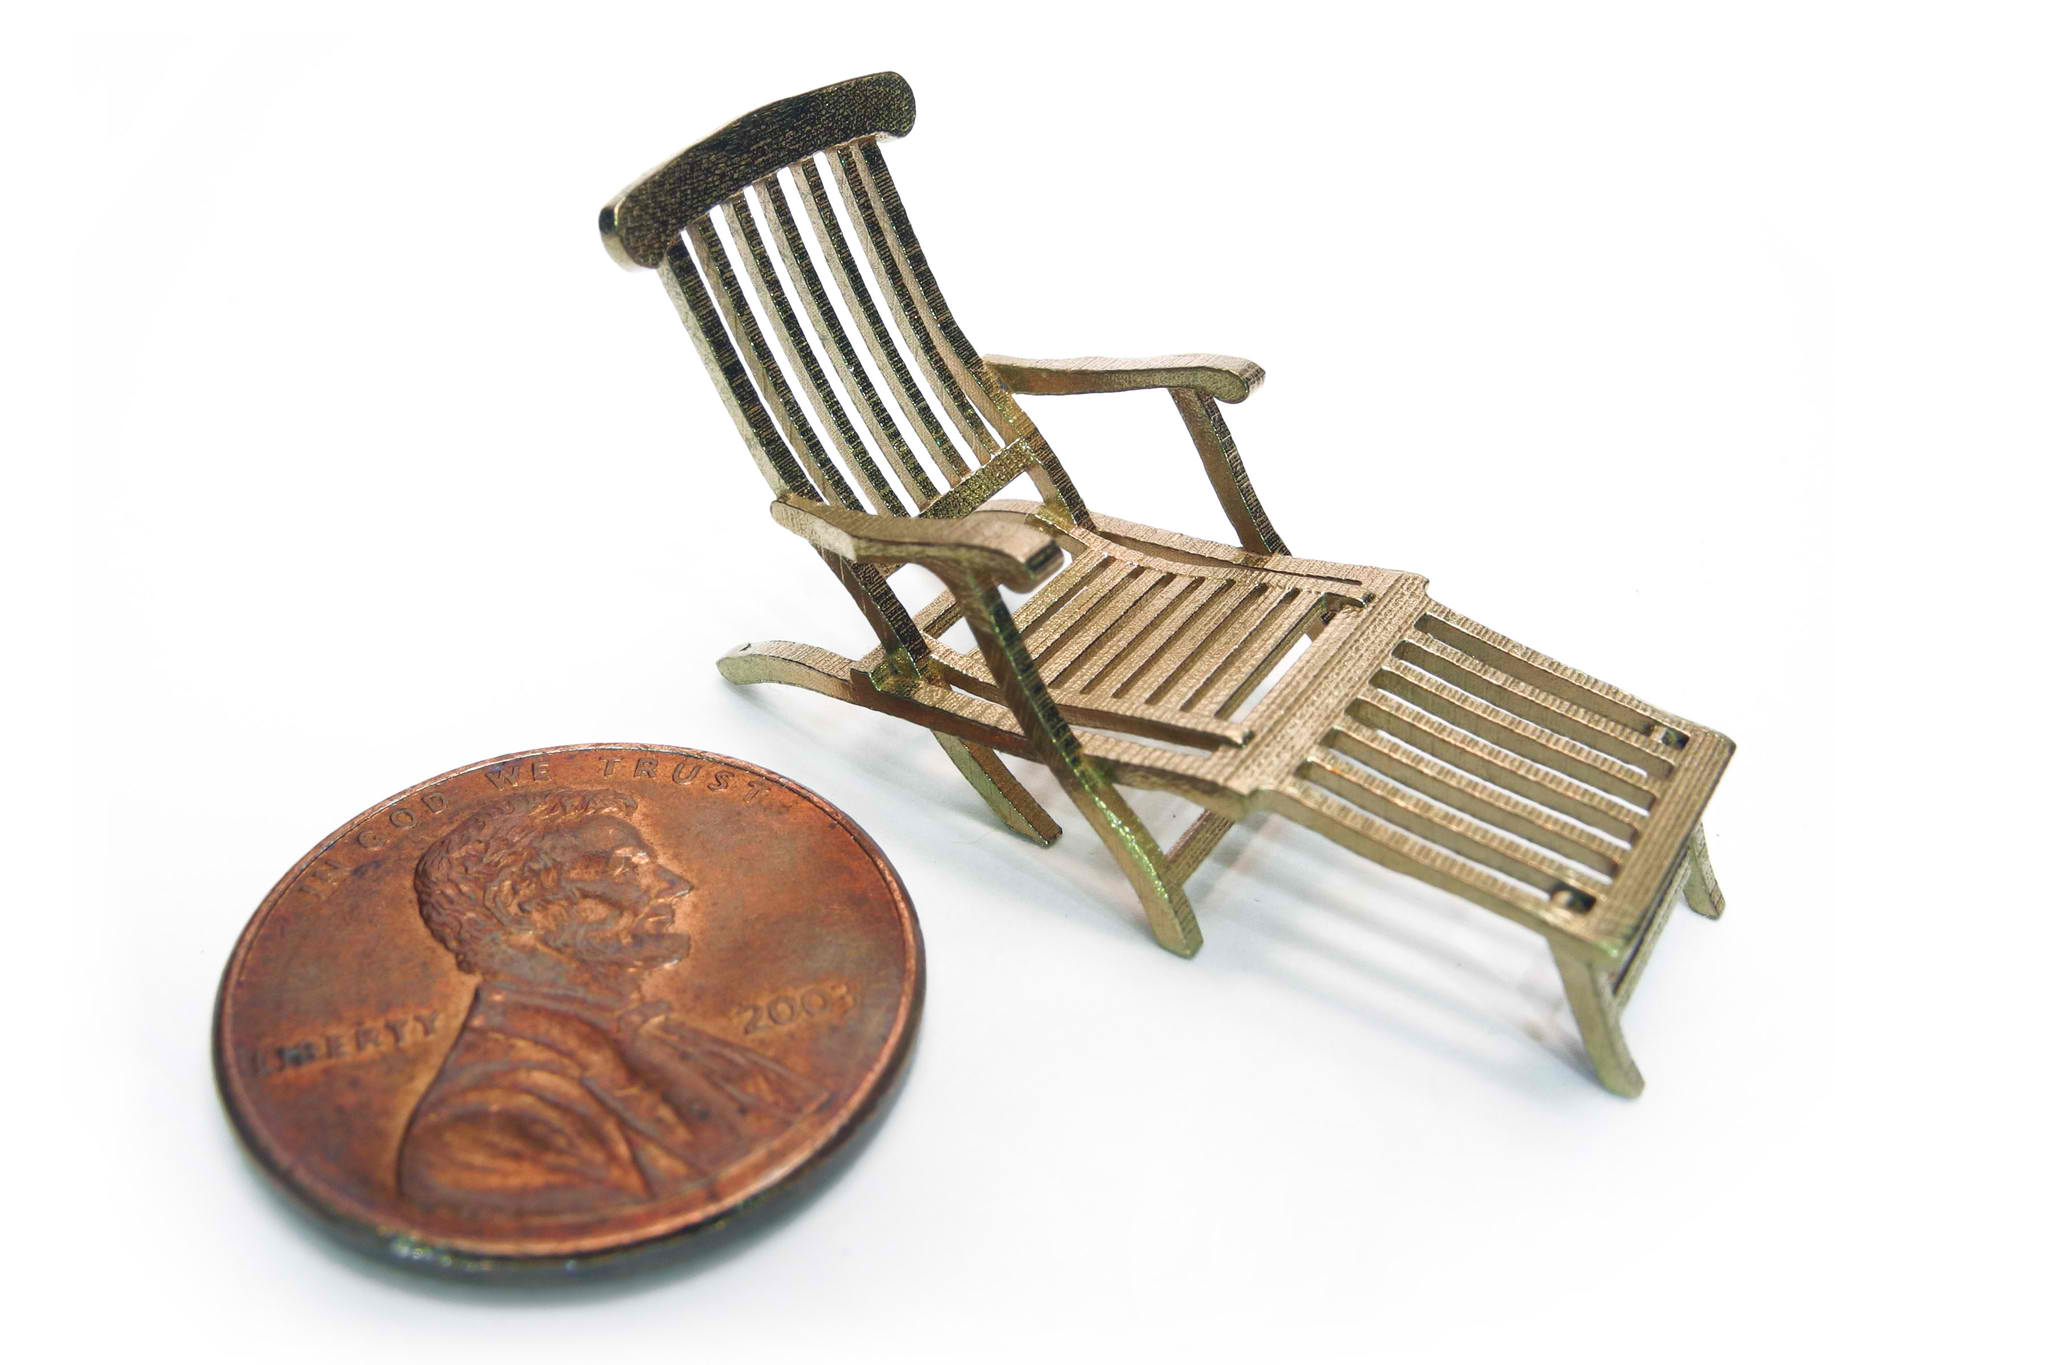 Titanic Deck Chair 3d Printing Is Creating A New Arts Economy The New Stack